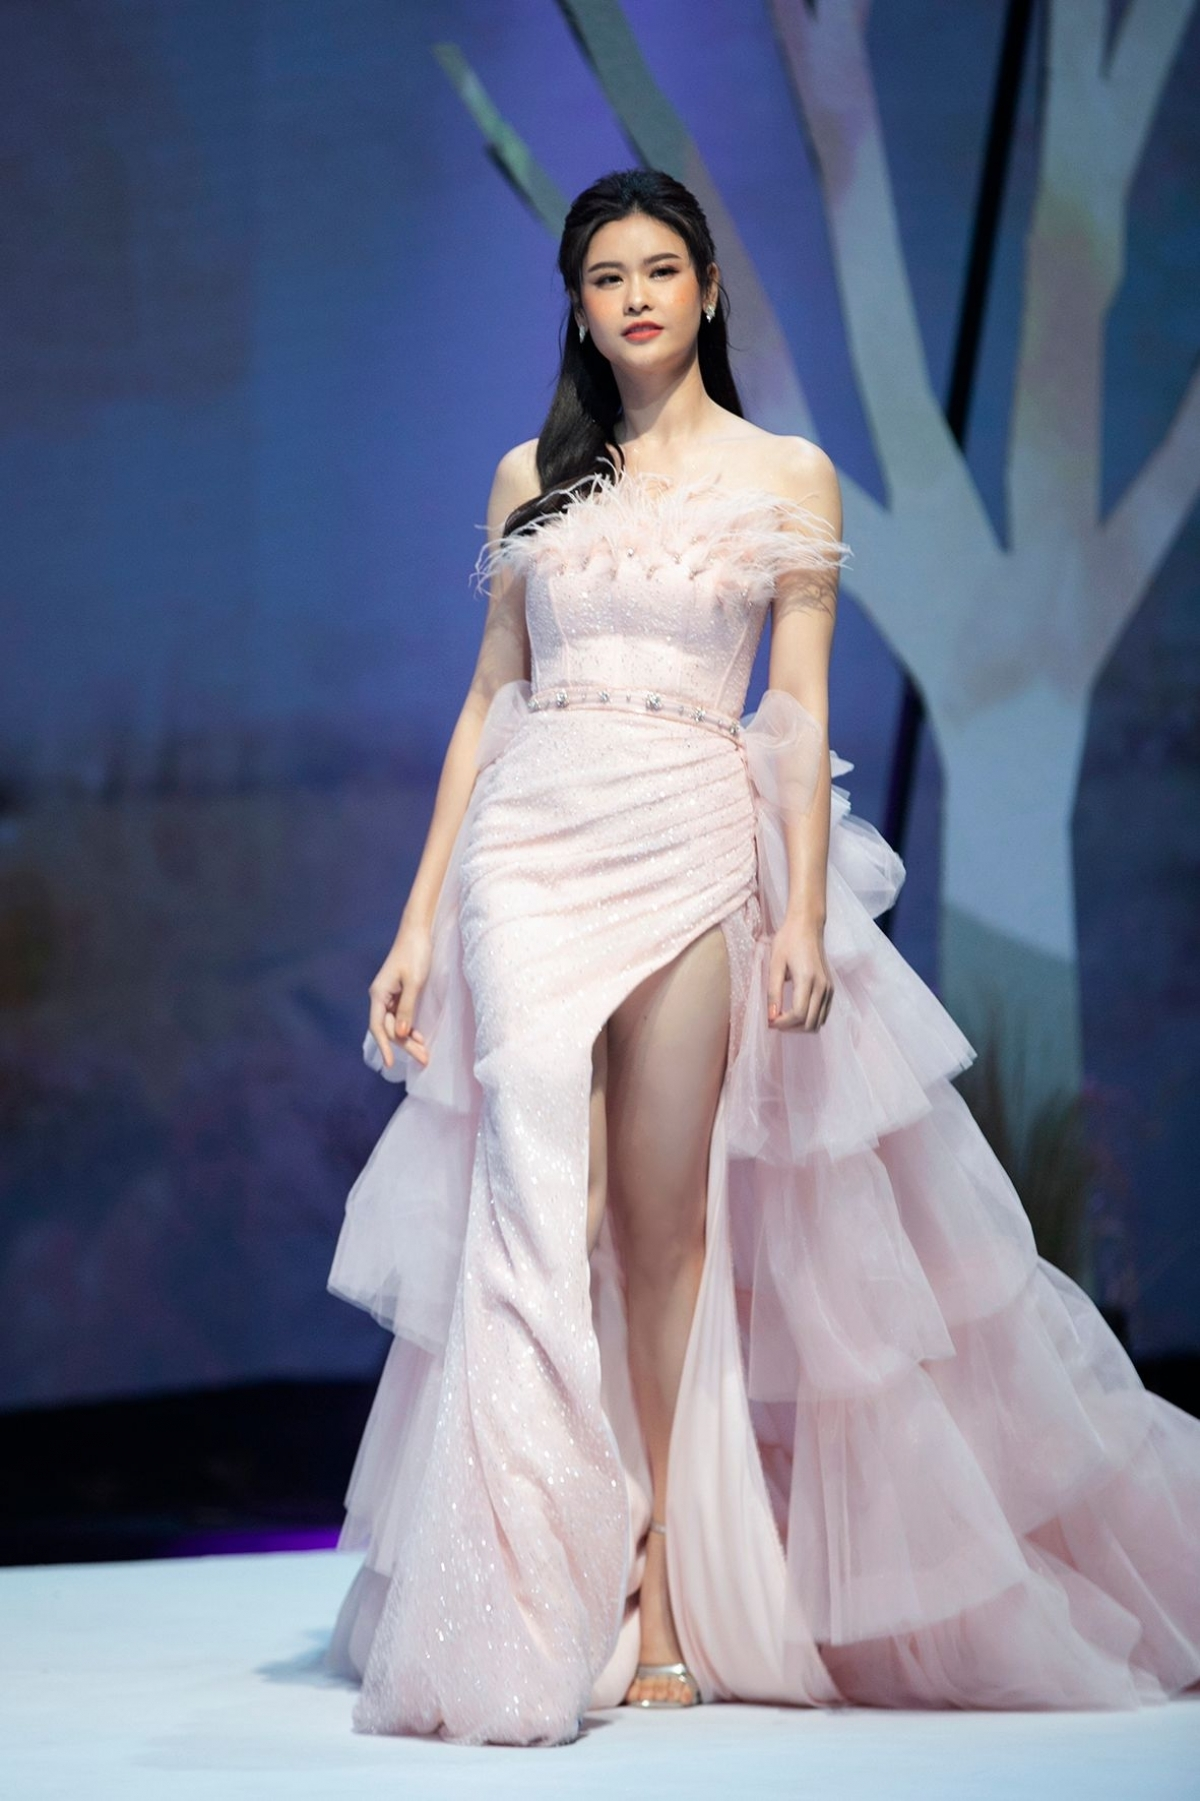 Actress Truong Quynh Anh appears charming whilst wearing a pastel pink outfit.